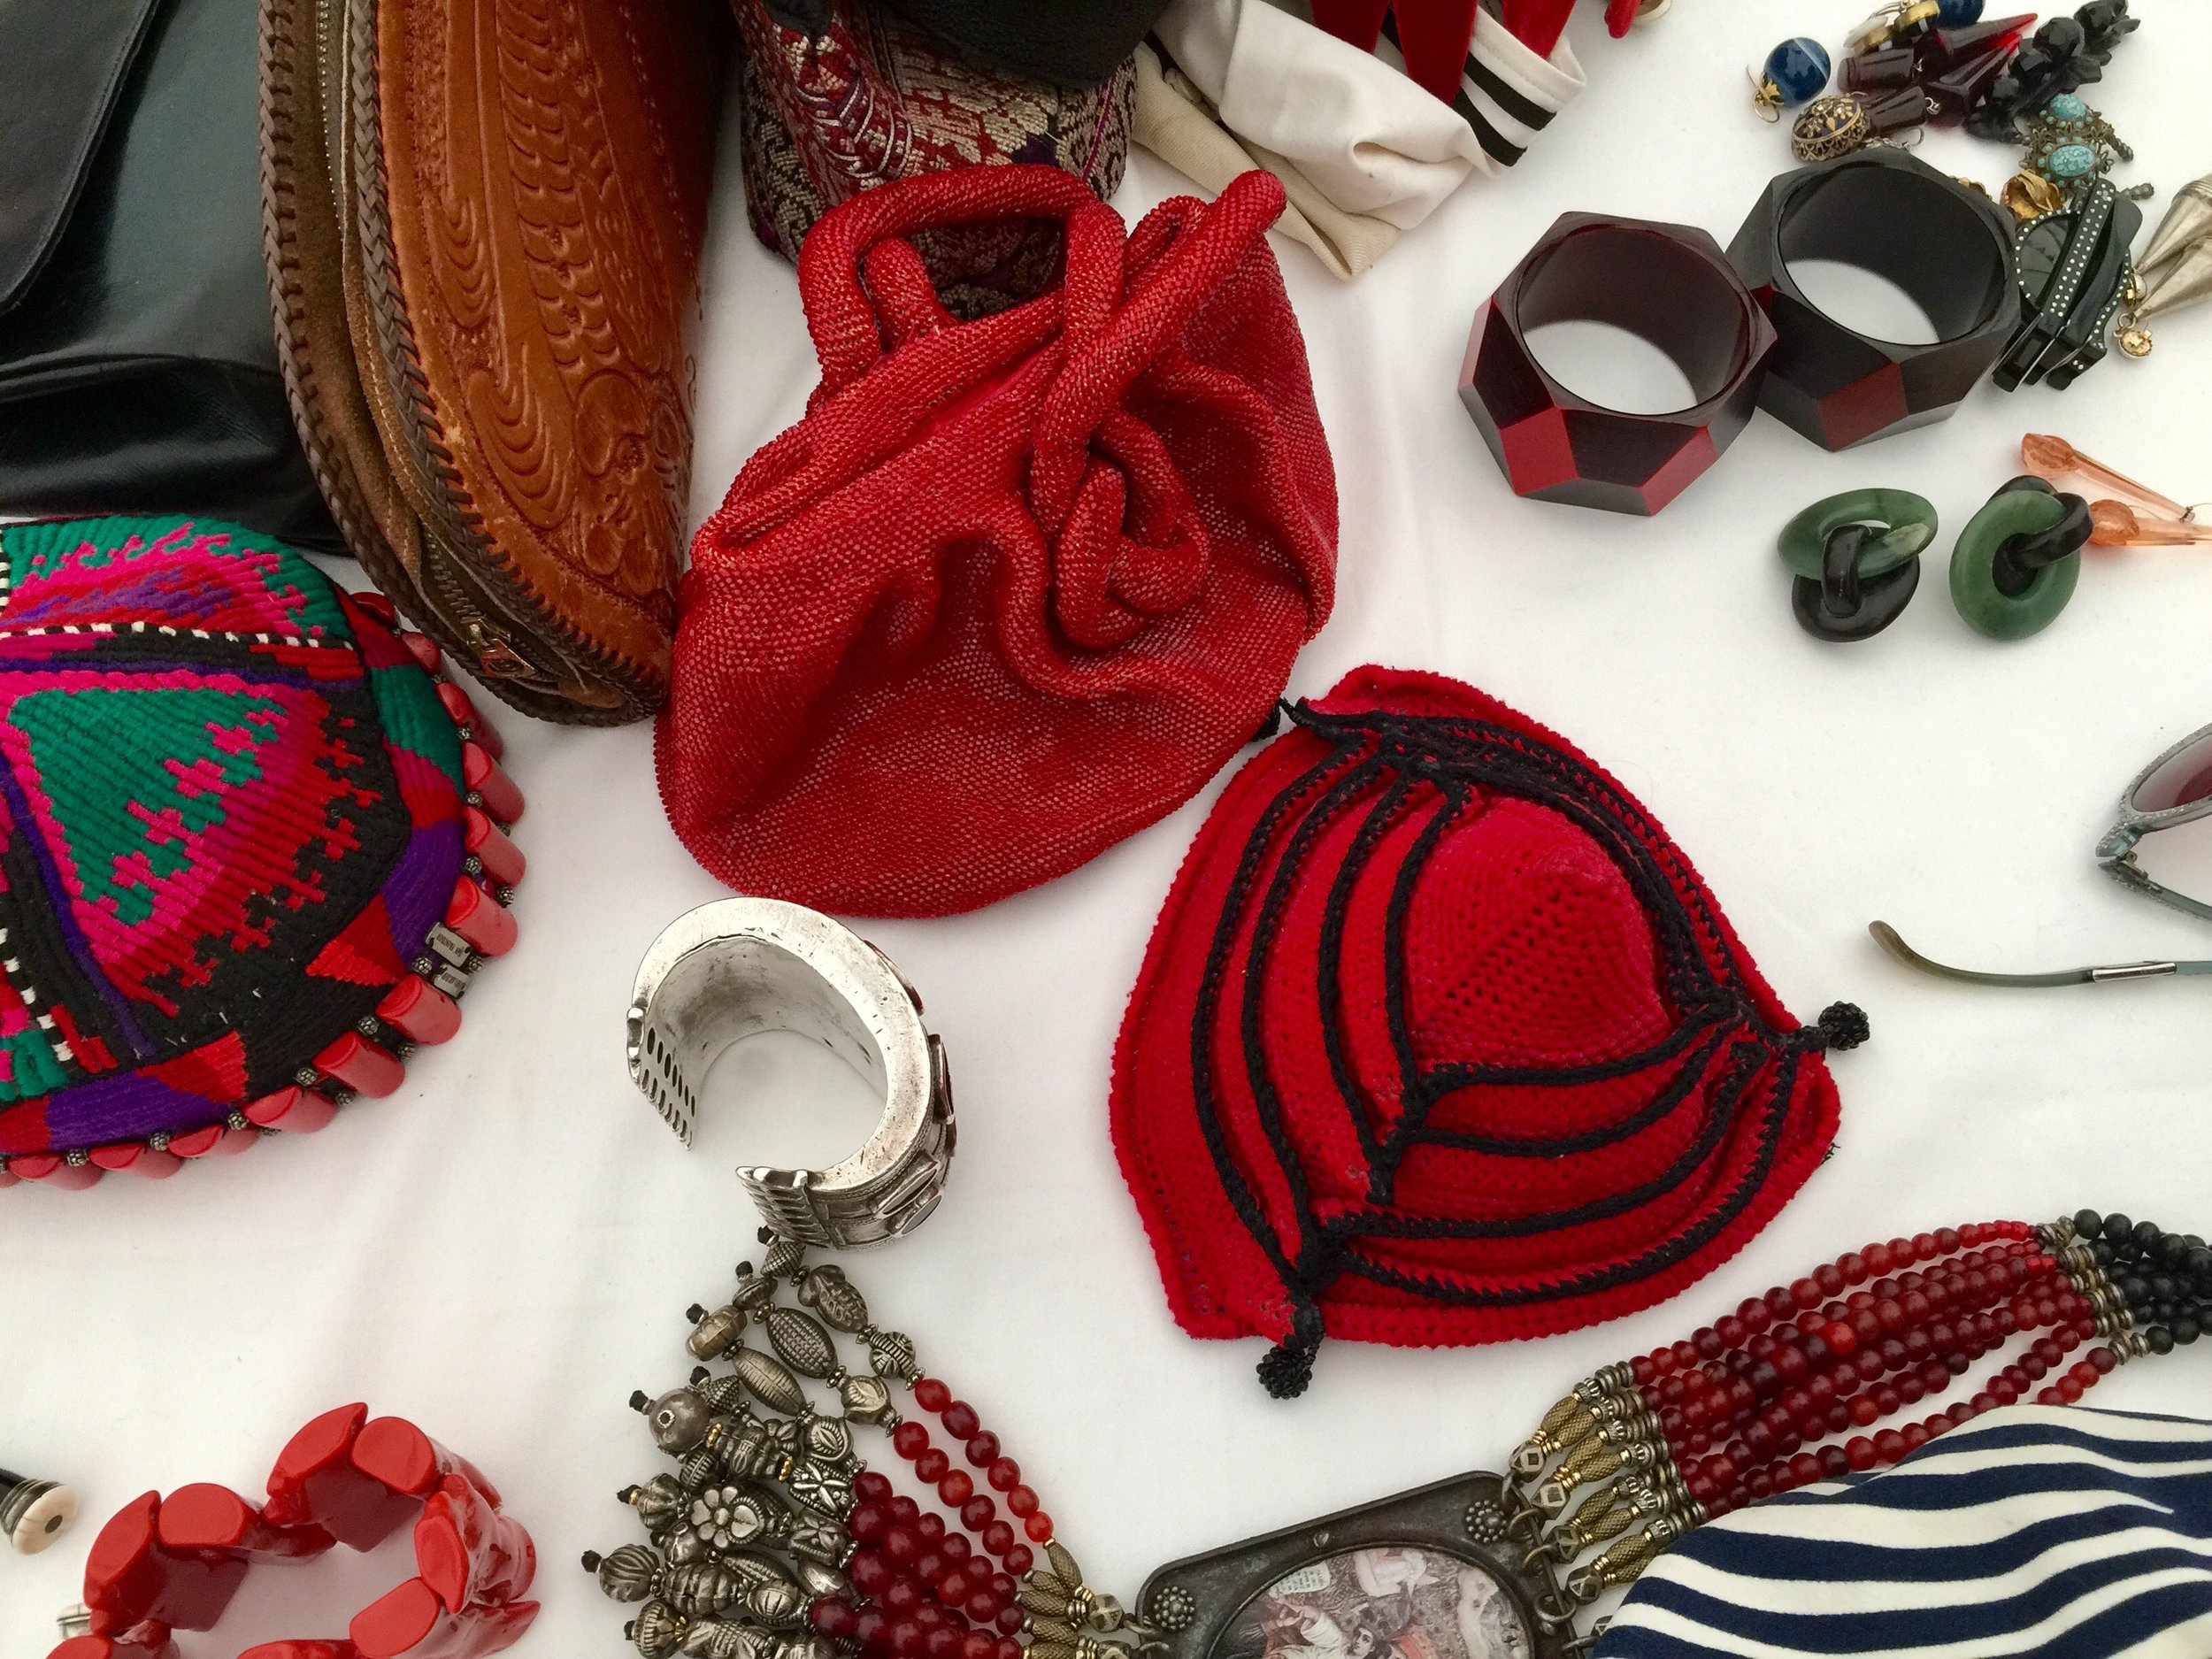 Hats, bangles & necklaces. Styling it up with Tziporah Salamon.